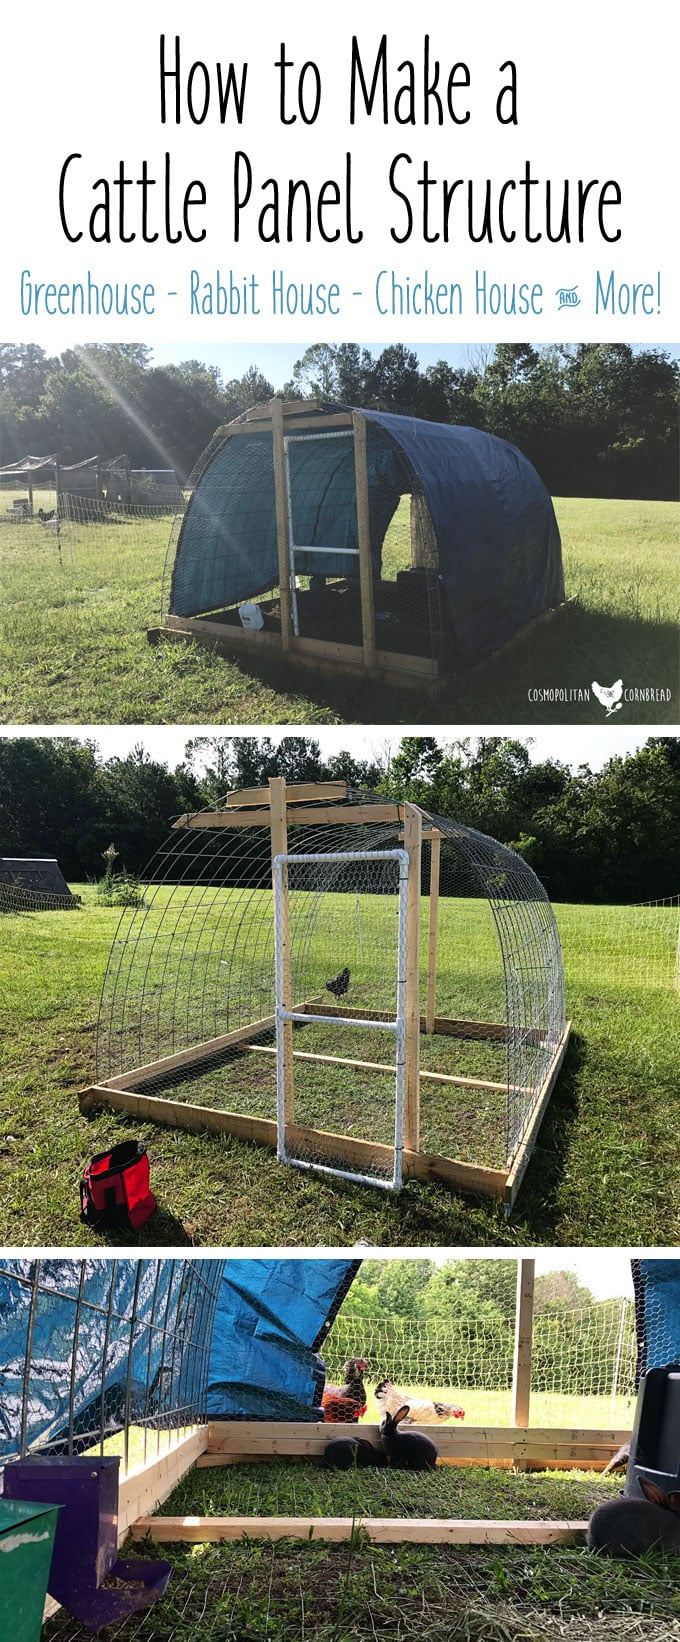 How to Make a Cattle Panel Structure | Make a Greenhouse, Chicken House, Rabbit House and More!